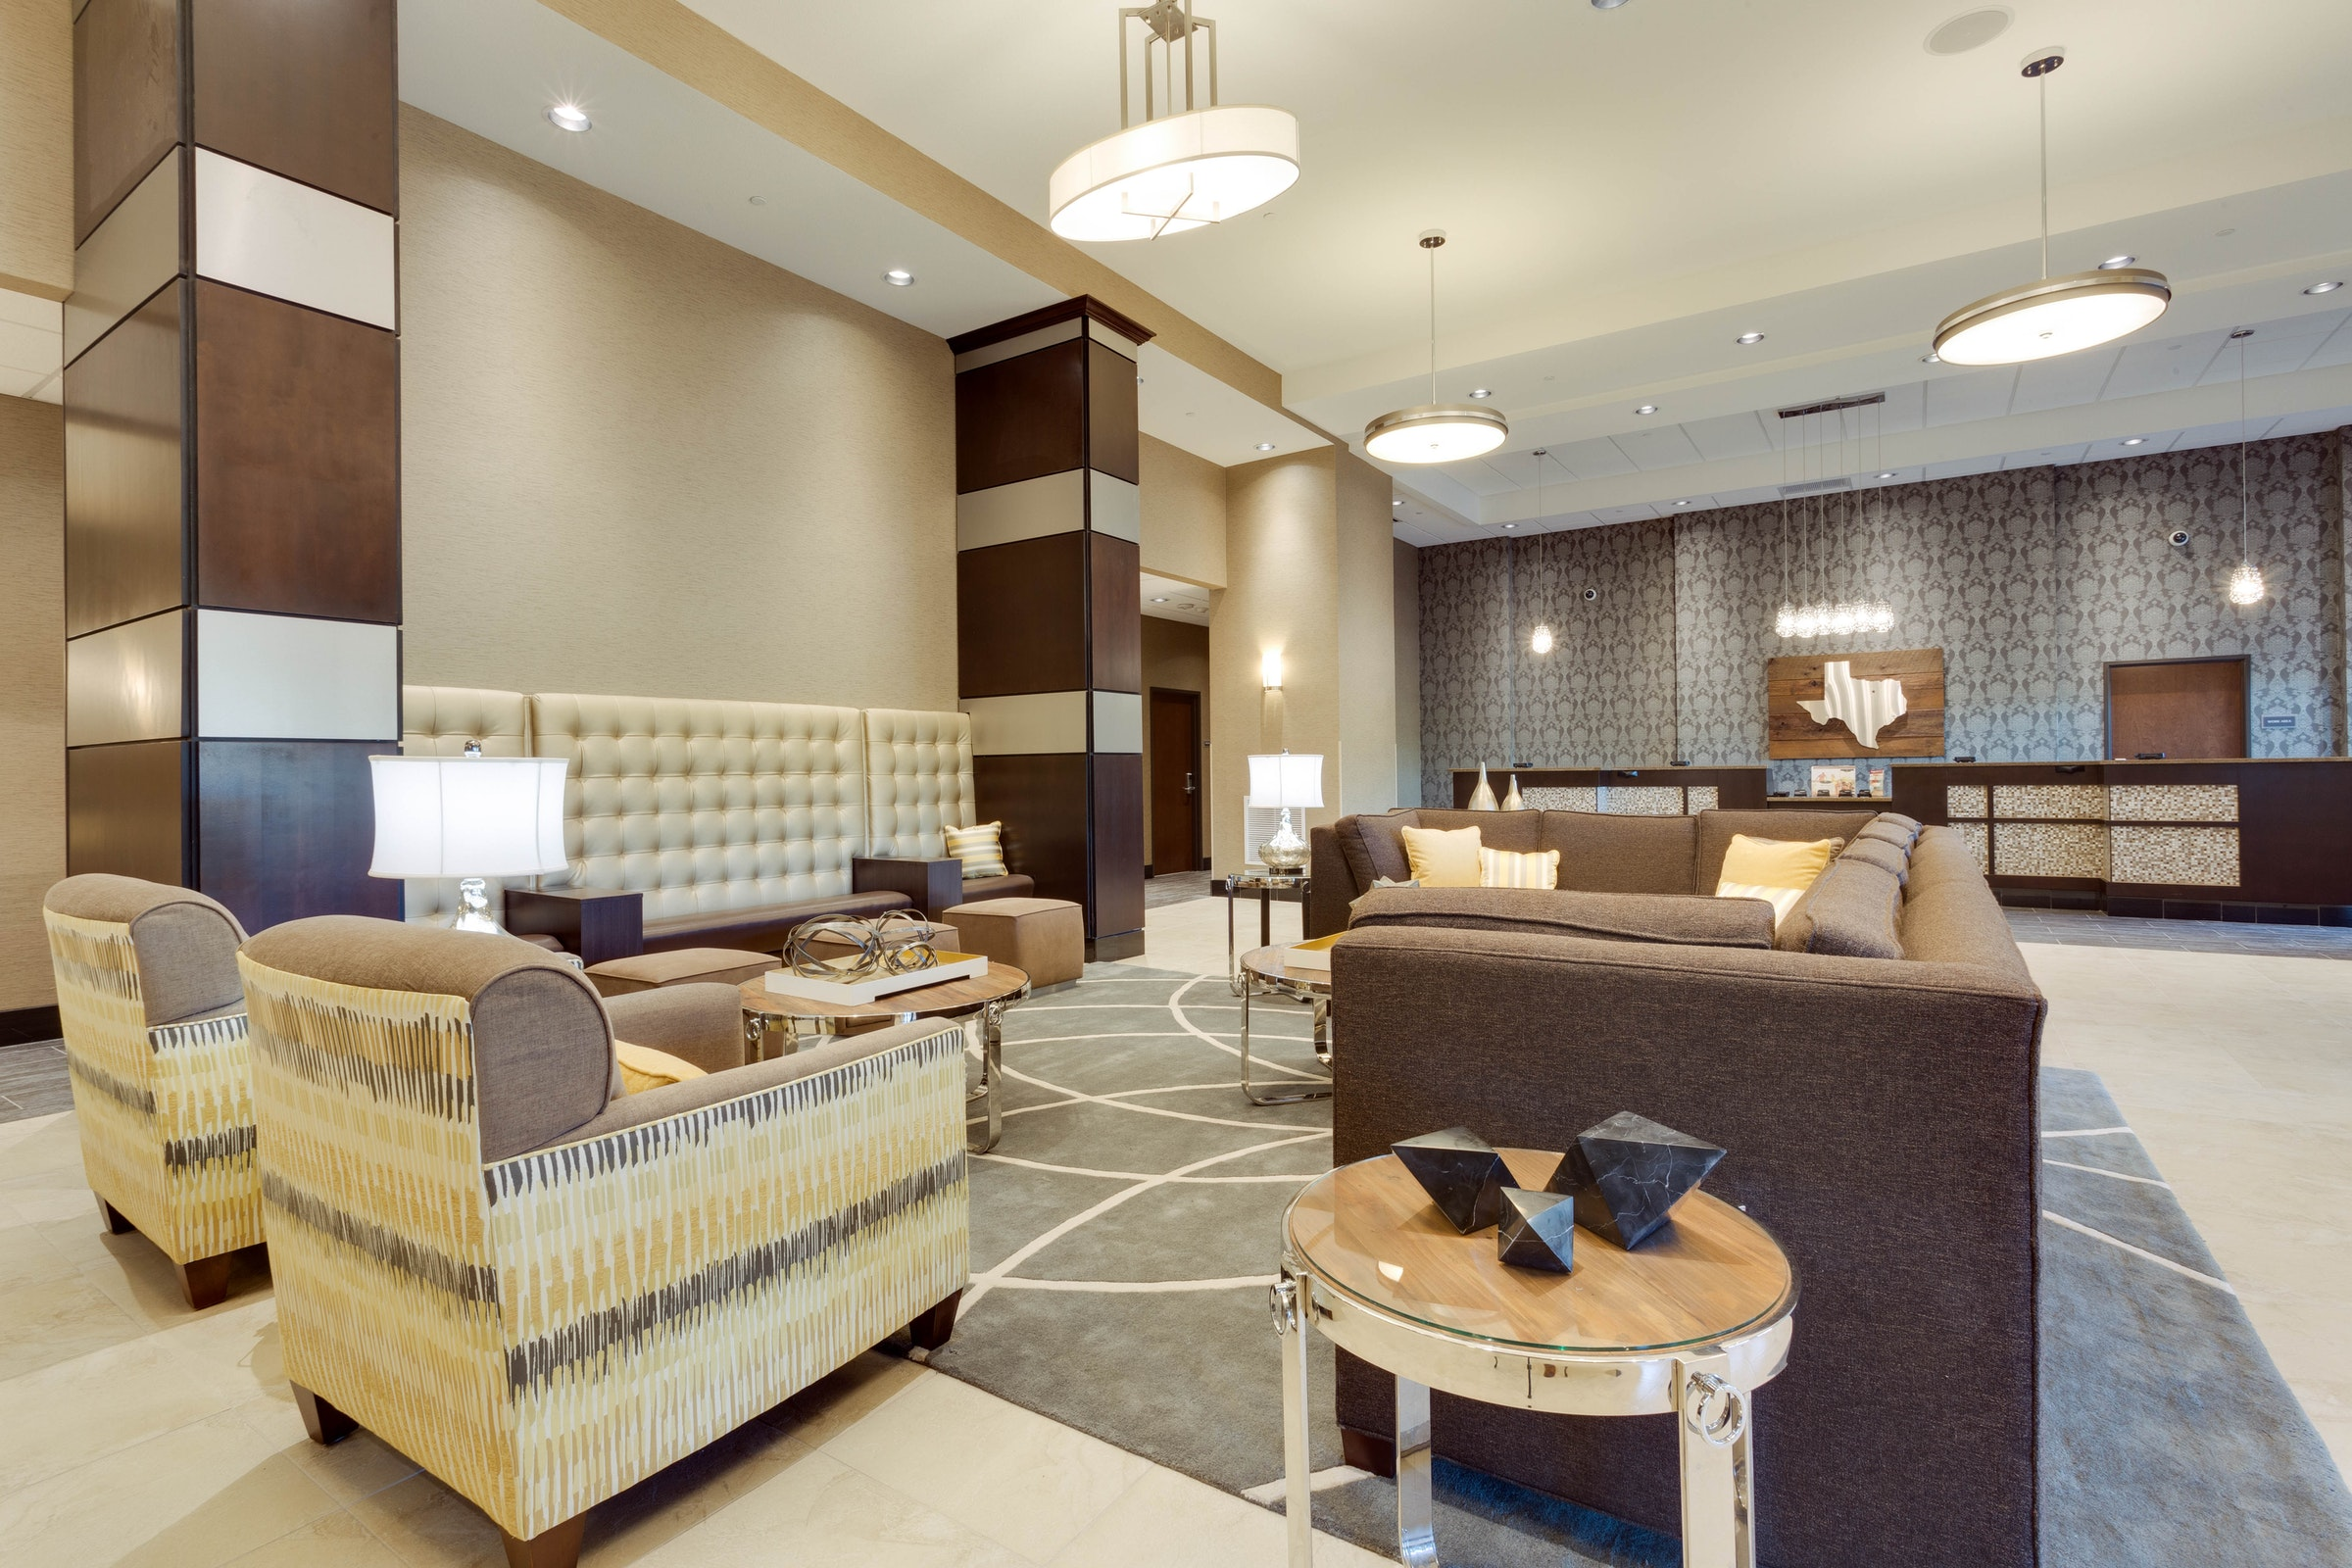 Drury Inn & Suites Frisco in Beyond Dallas